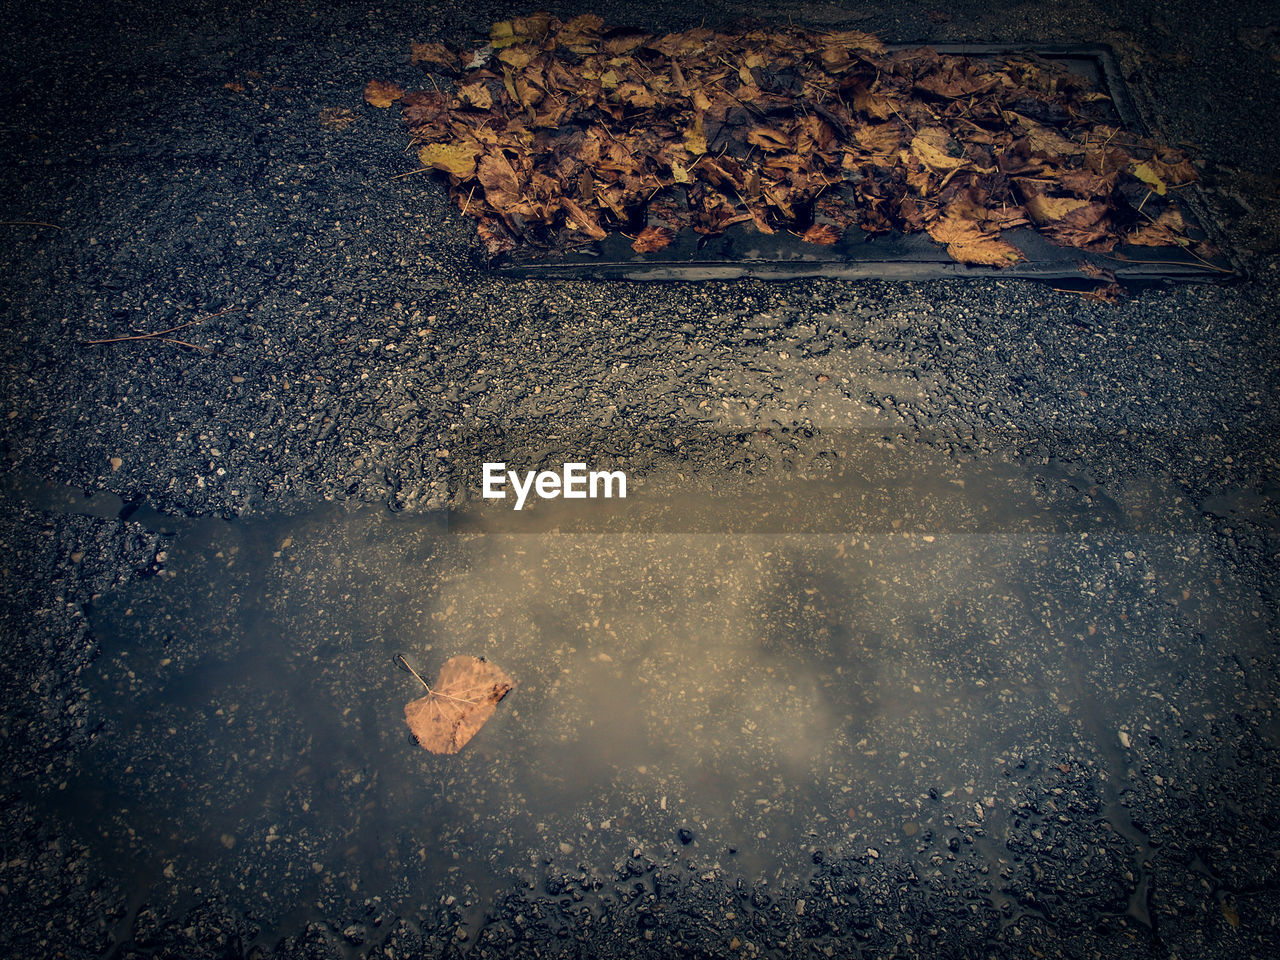 autumn, heat - temperature, change, outdoors, leaf, nature, no people, day, close-up